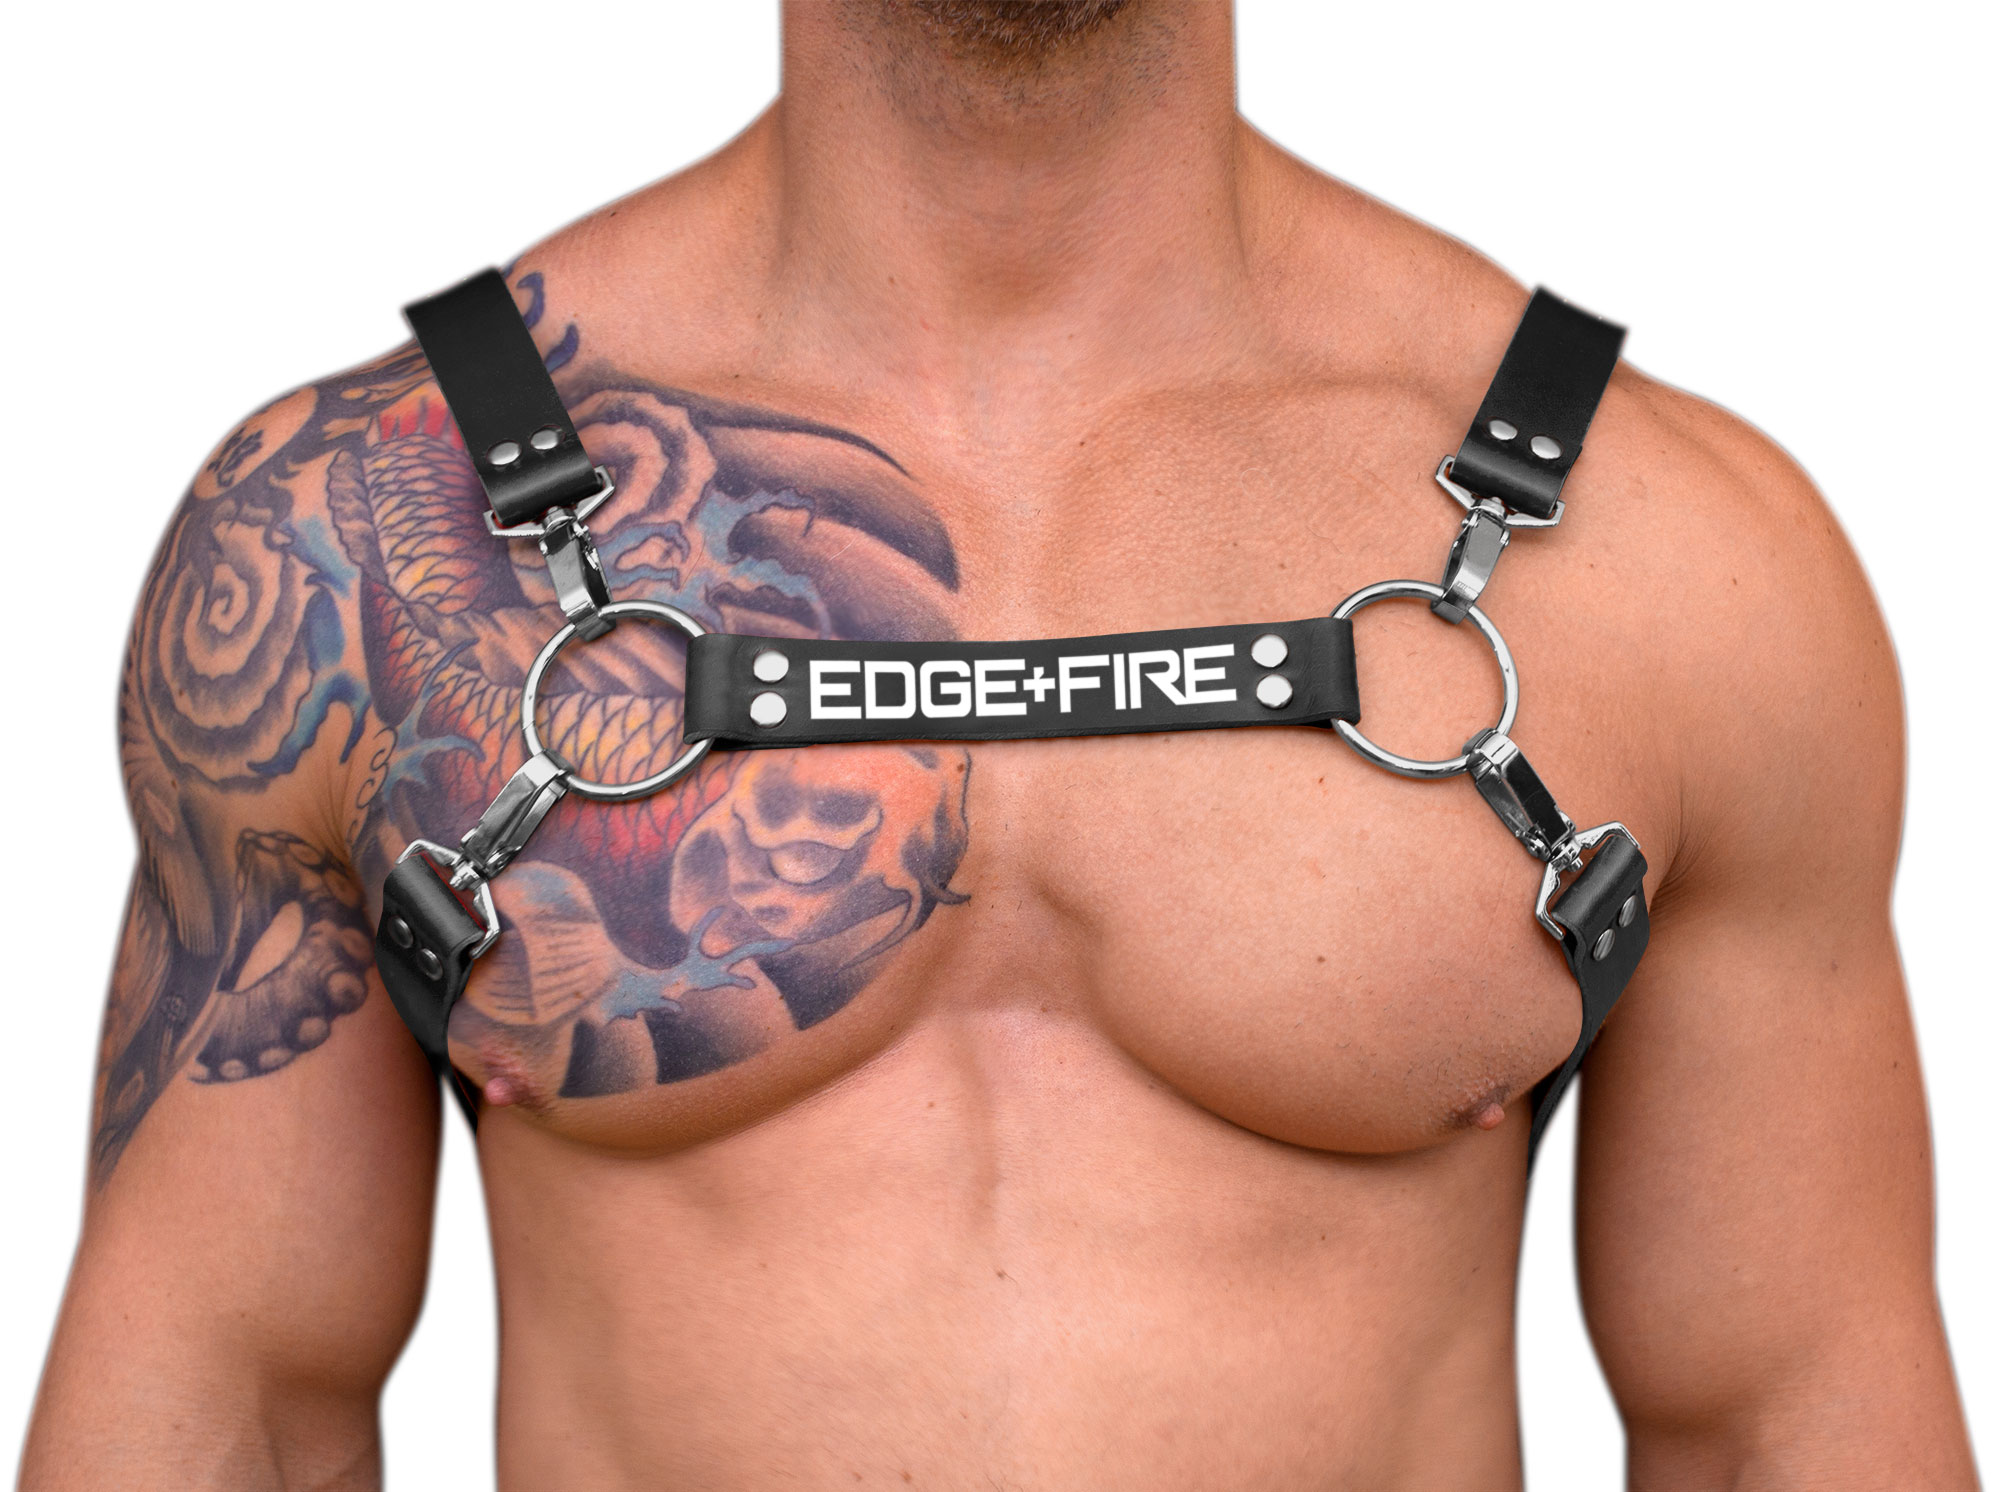 STRONG PUP H-STYLE LEATHER EDGE+FIRE CHEST HARNESS - Black